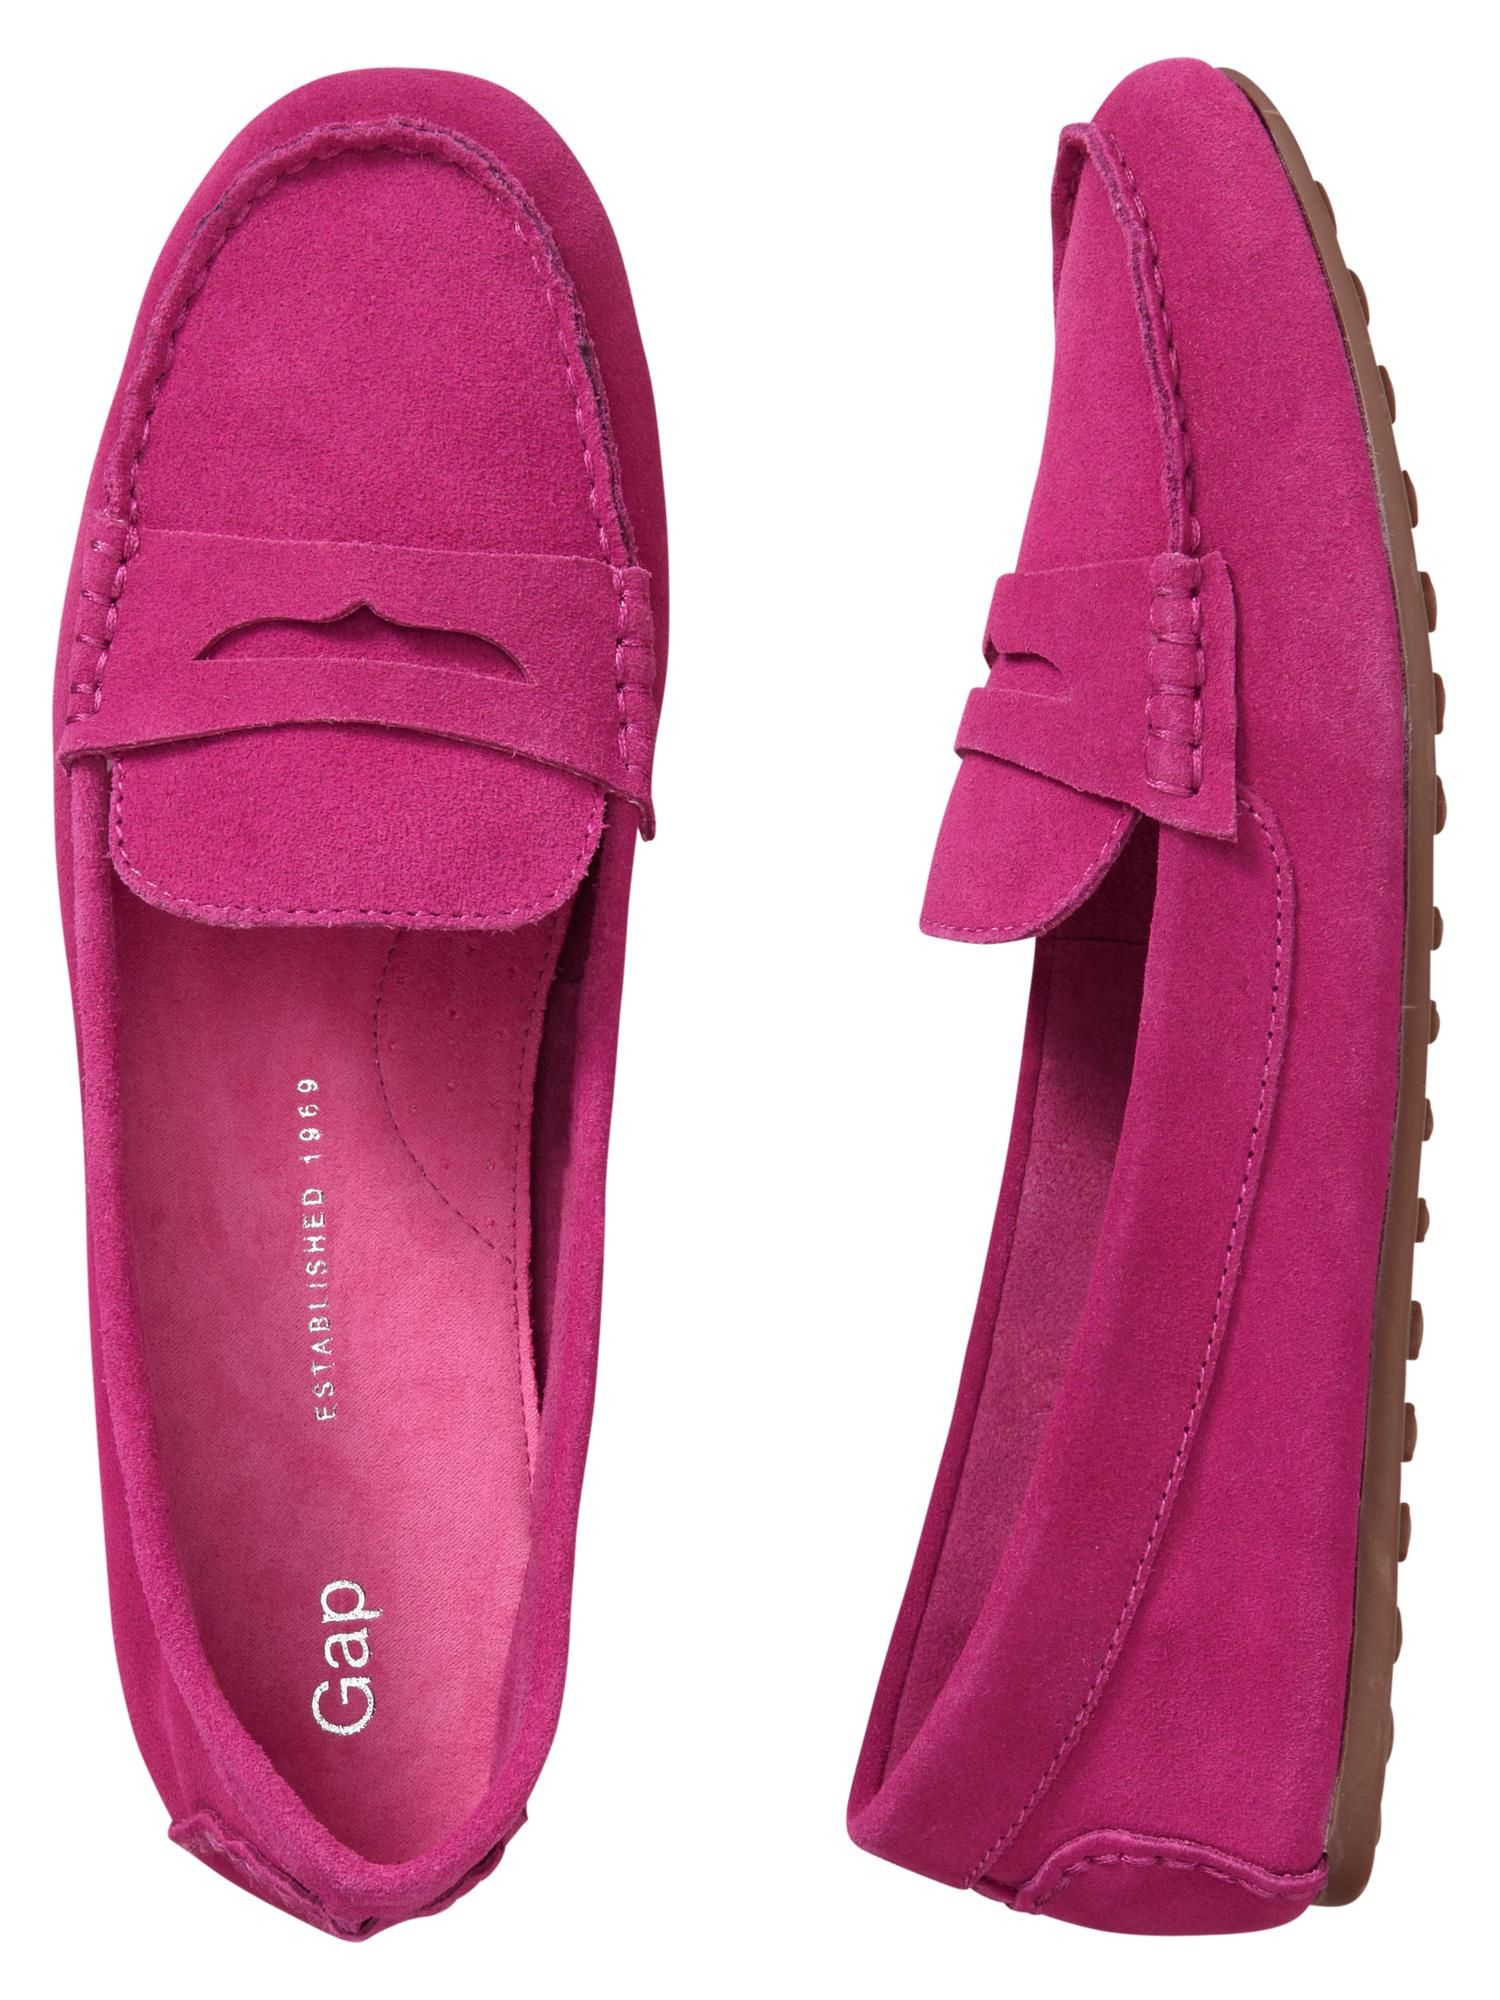 T-JULY Womens Modern Penny Loafer Shoes Fashion Casual Retro Slip-On Boat Moccasin Flat Shoes